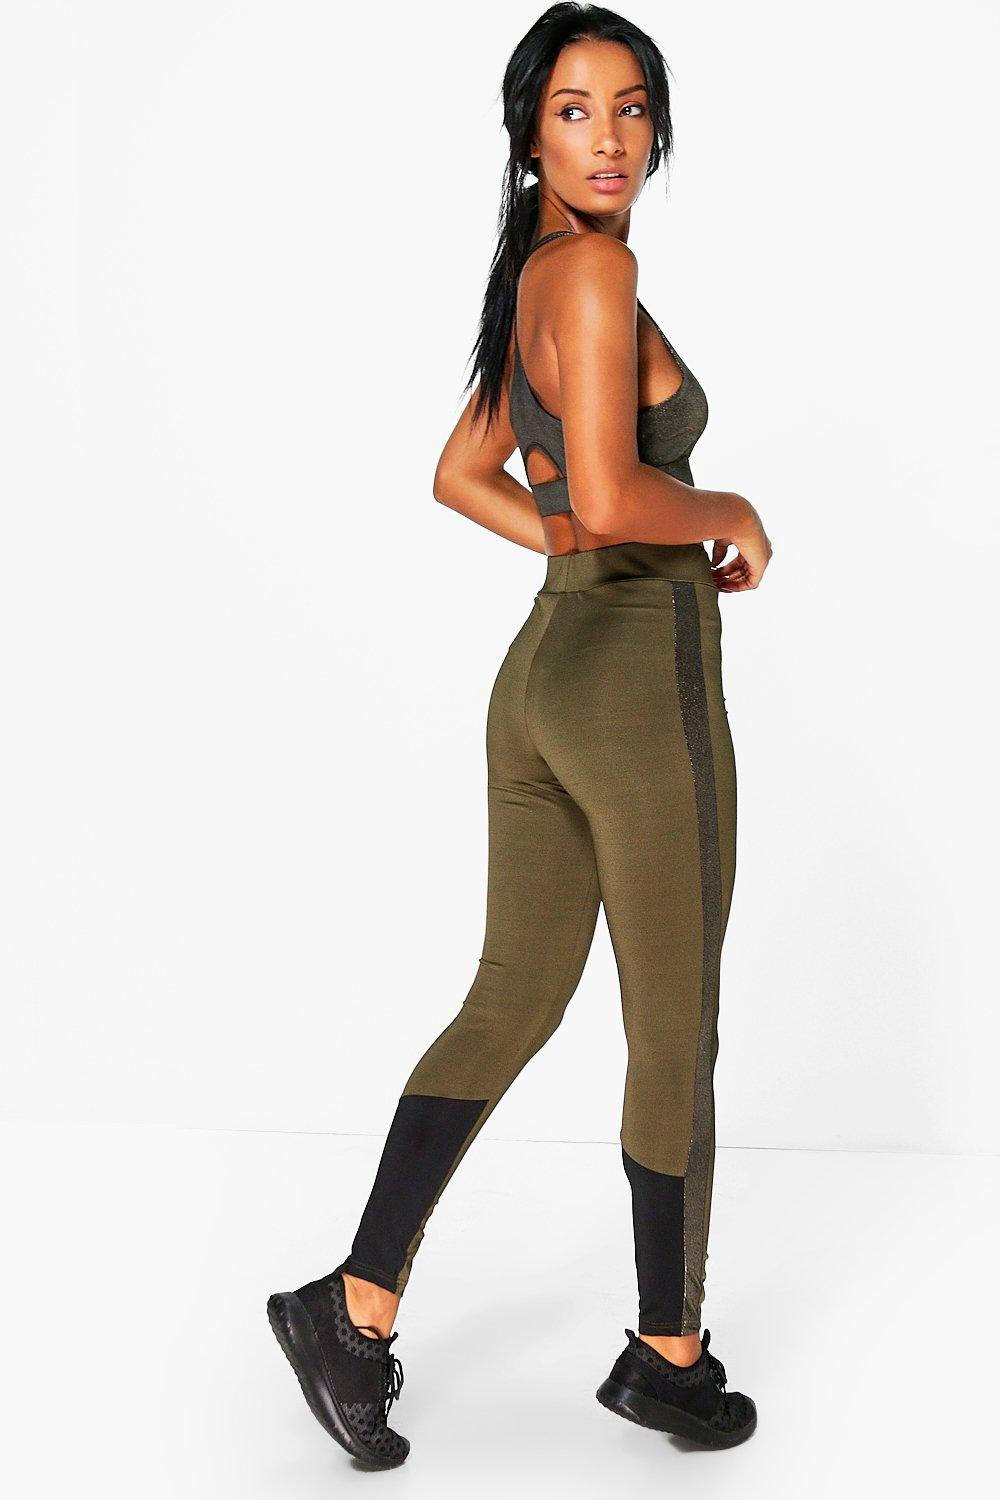 Lucy FIT Metalic Panel Running Leggings khaki